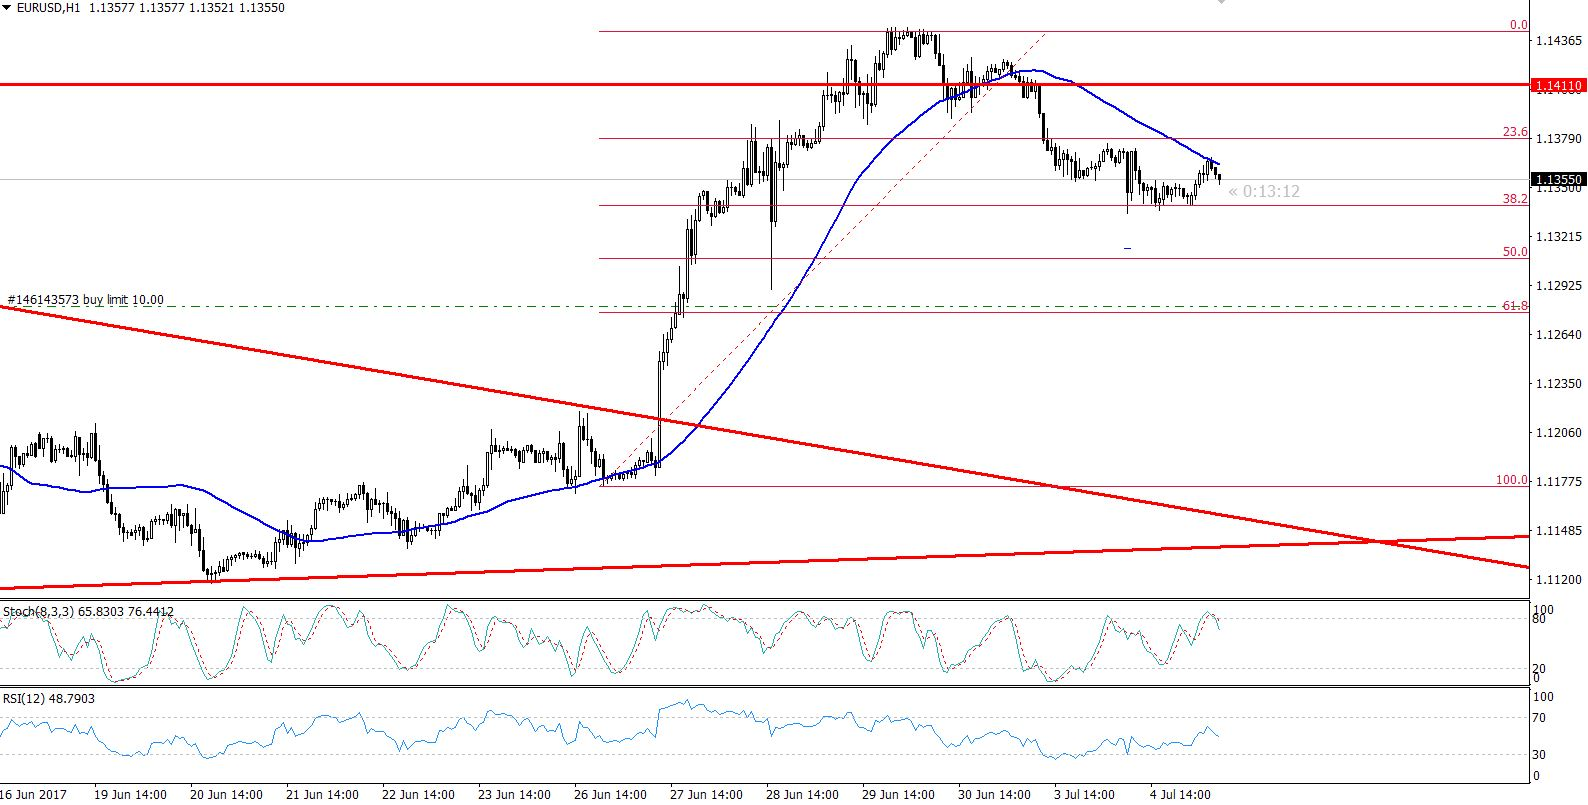 EURUSD - Hourly Chart - 38.2% Retracement Support